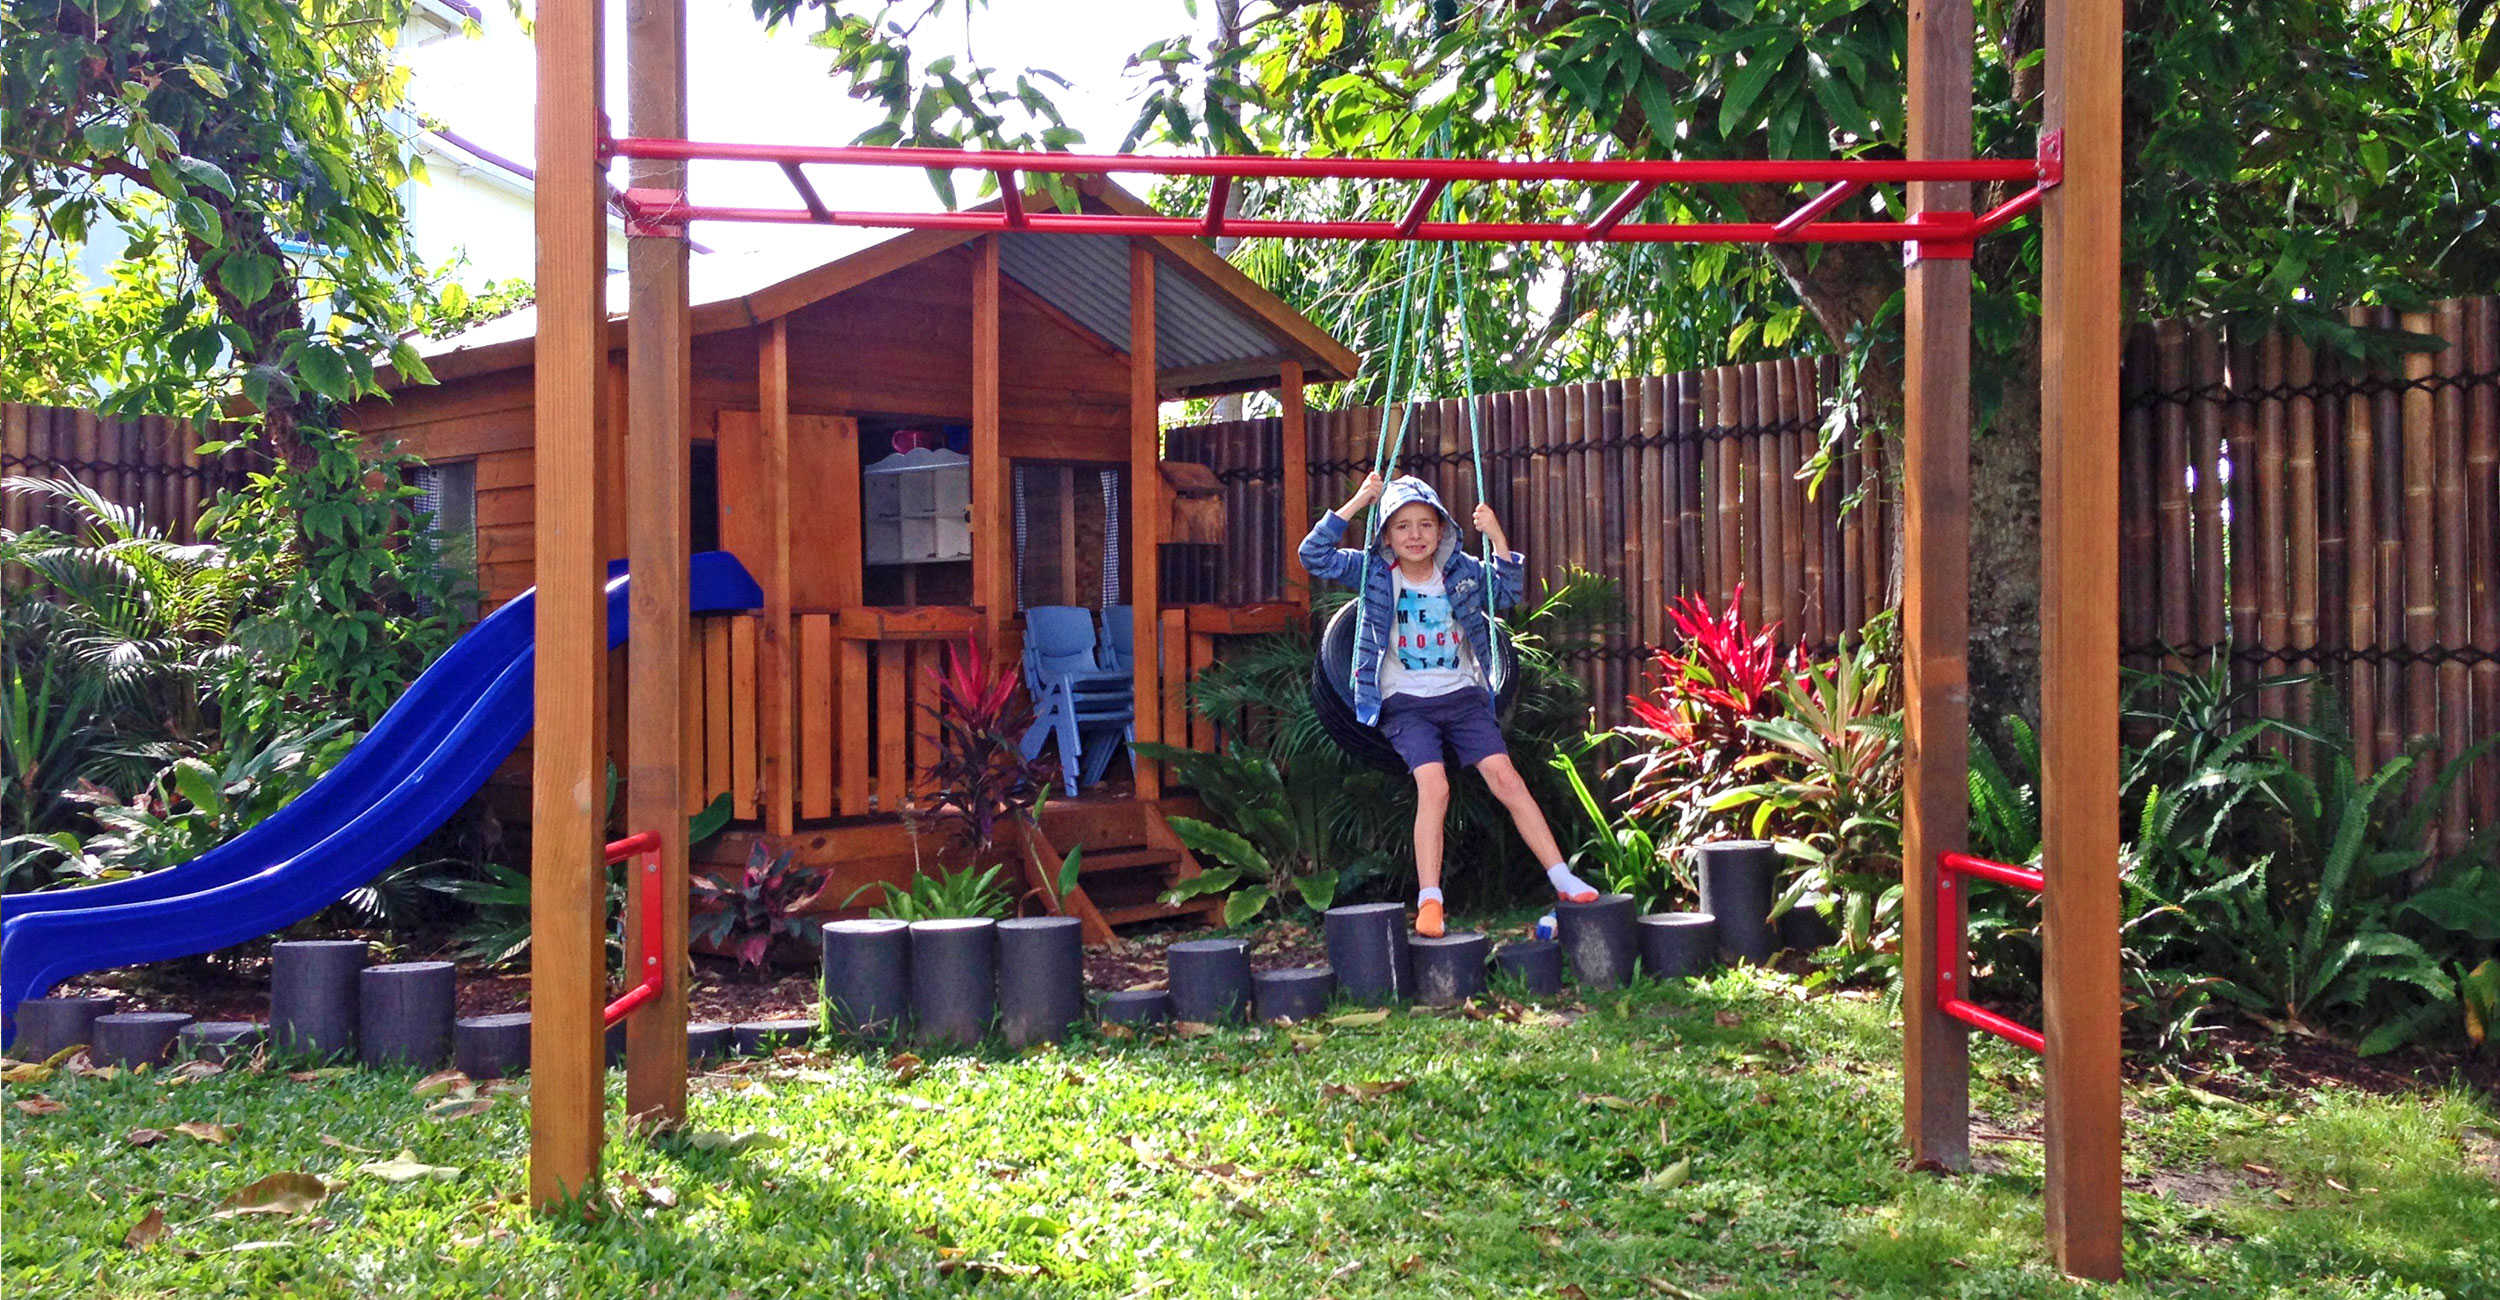 Best Quality Timber Play Equipment - Aarons Outdoor Living